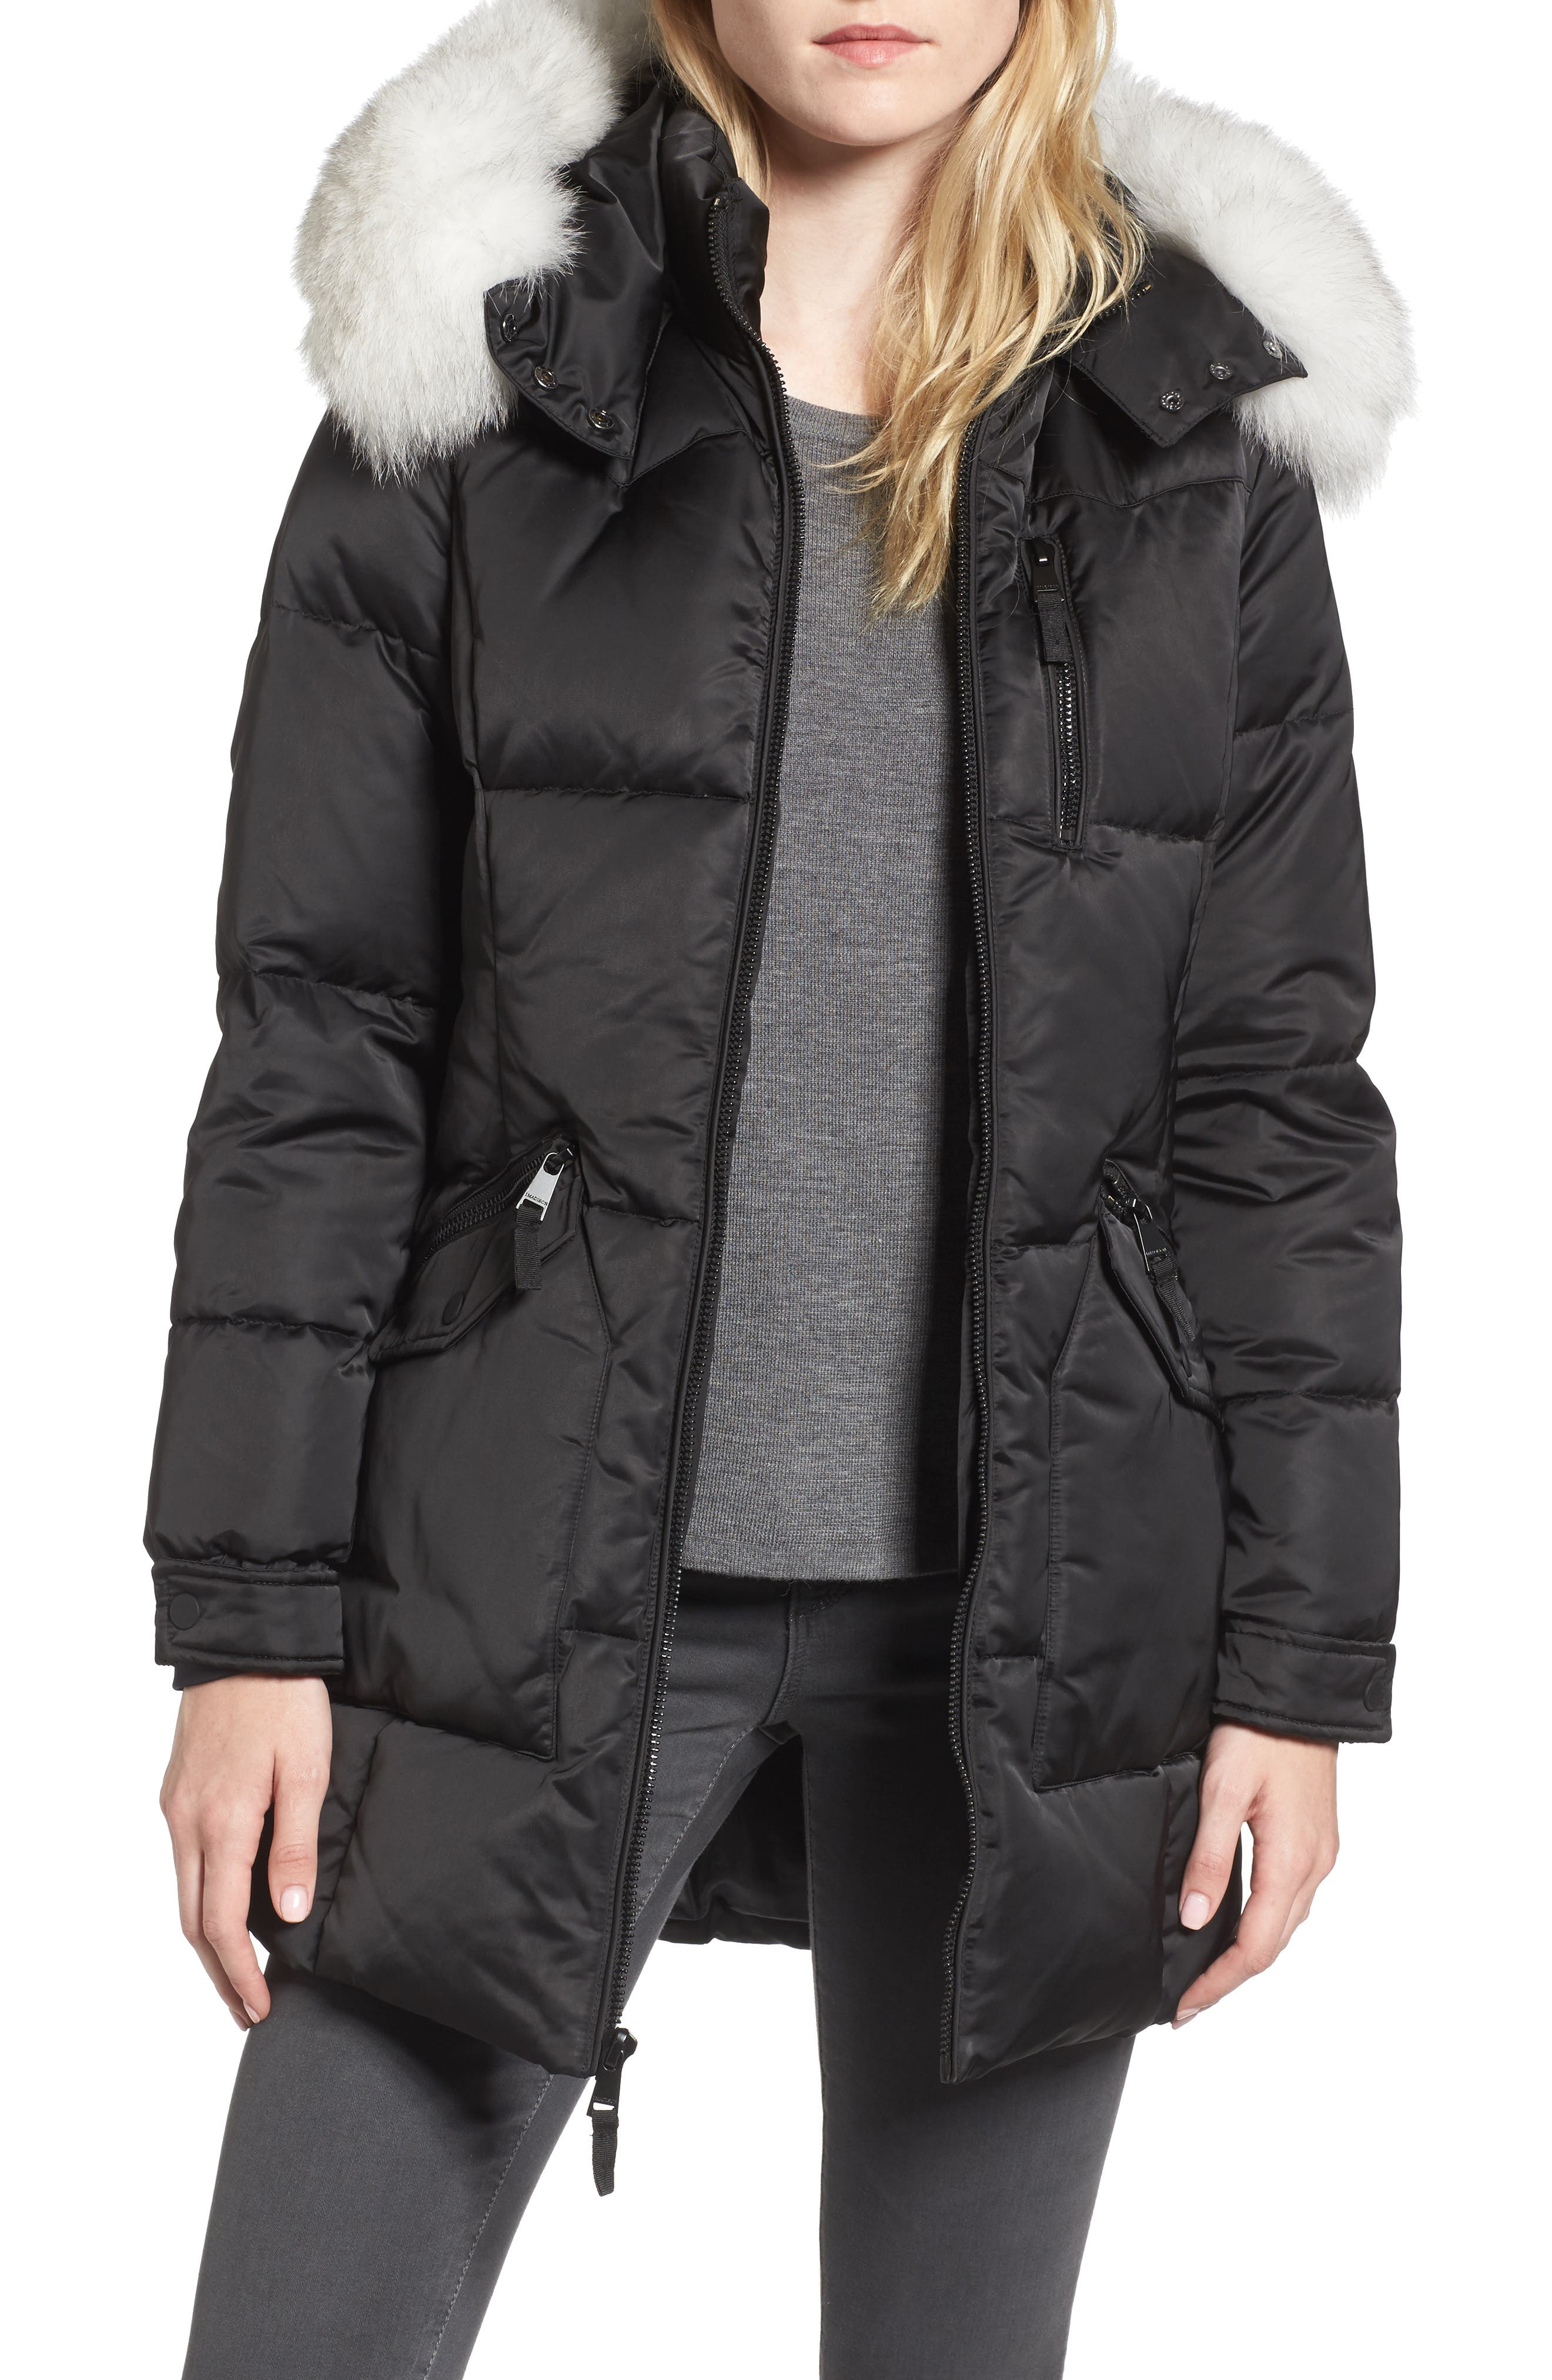 Alternate Image 1 Selected - 1 Madison Puffer Jacket with Genuine Fox Fur Trim